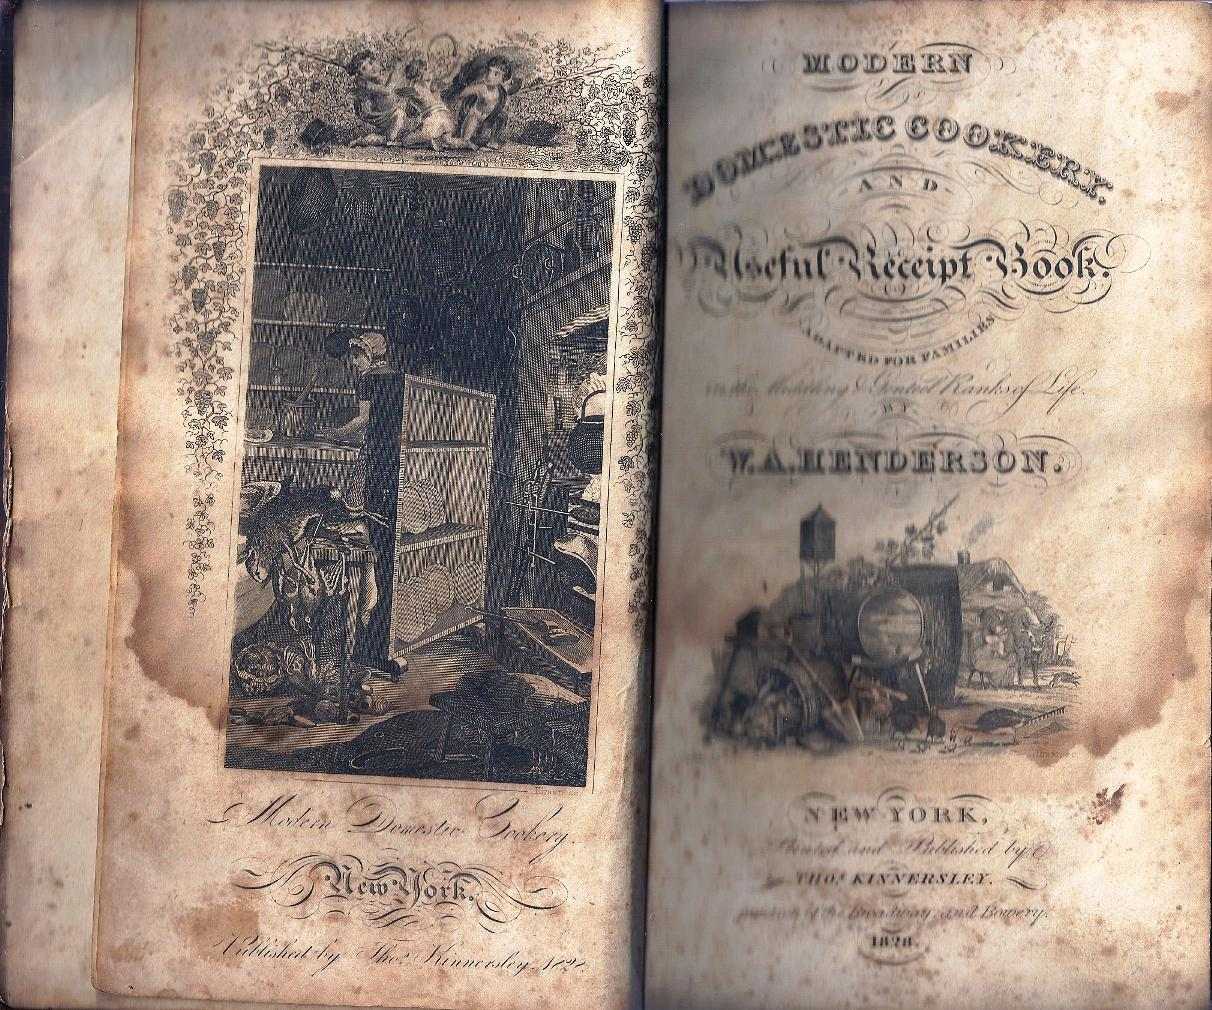 MODERN DOMESTIC COOKERY, AND USEFUL RECEIPT BOOK,: COOKERY] HENDERSON, W.